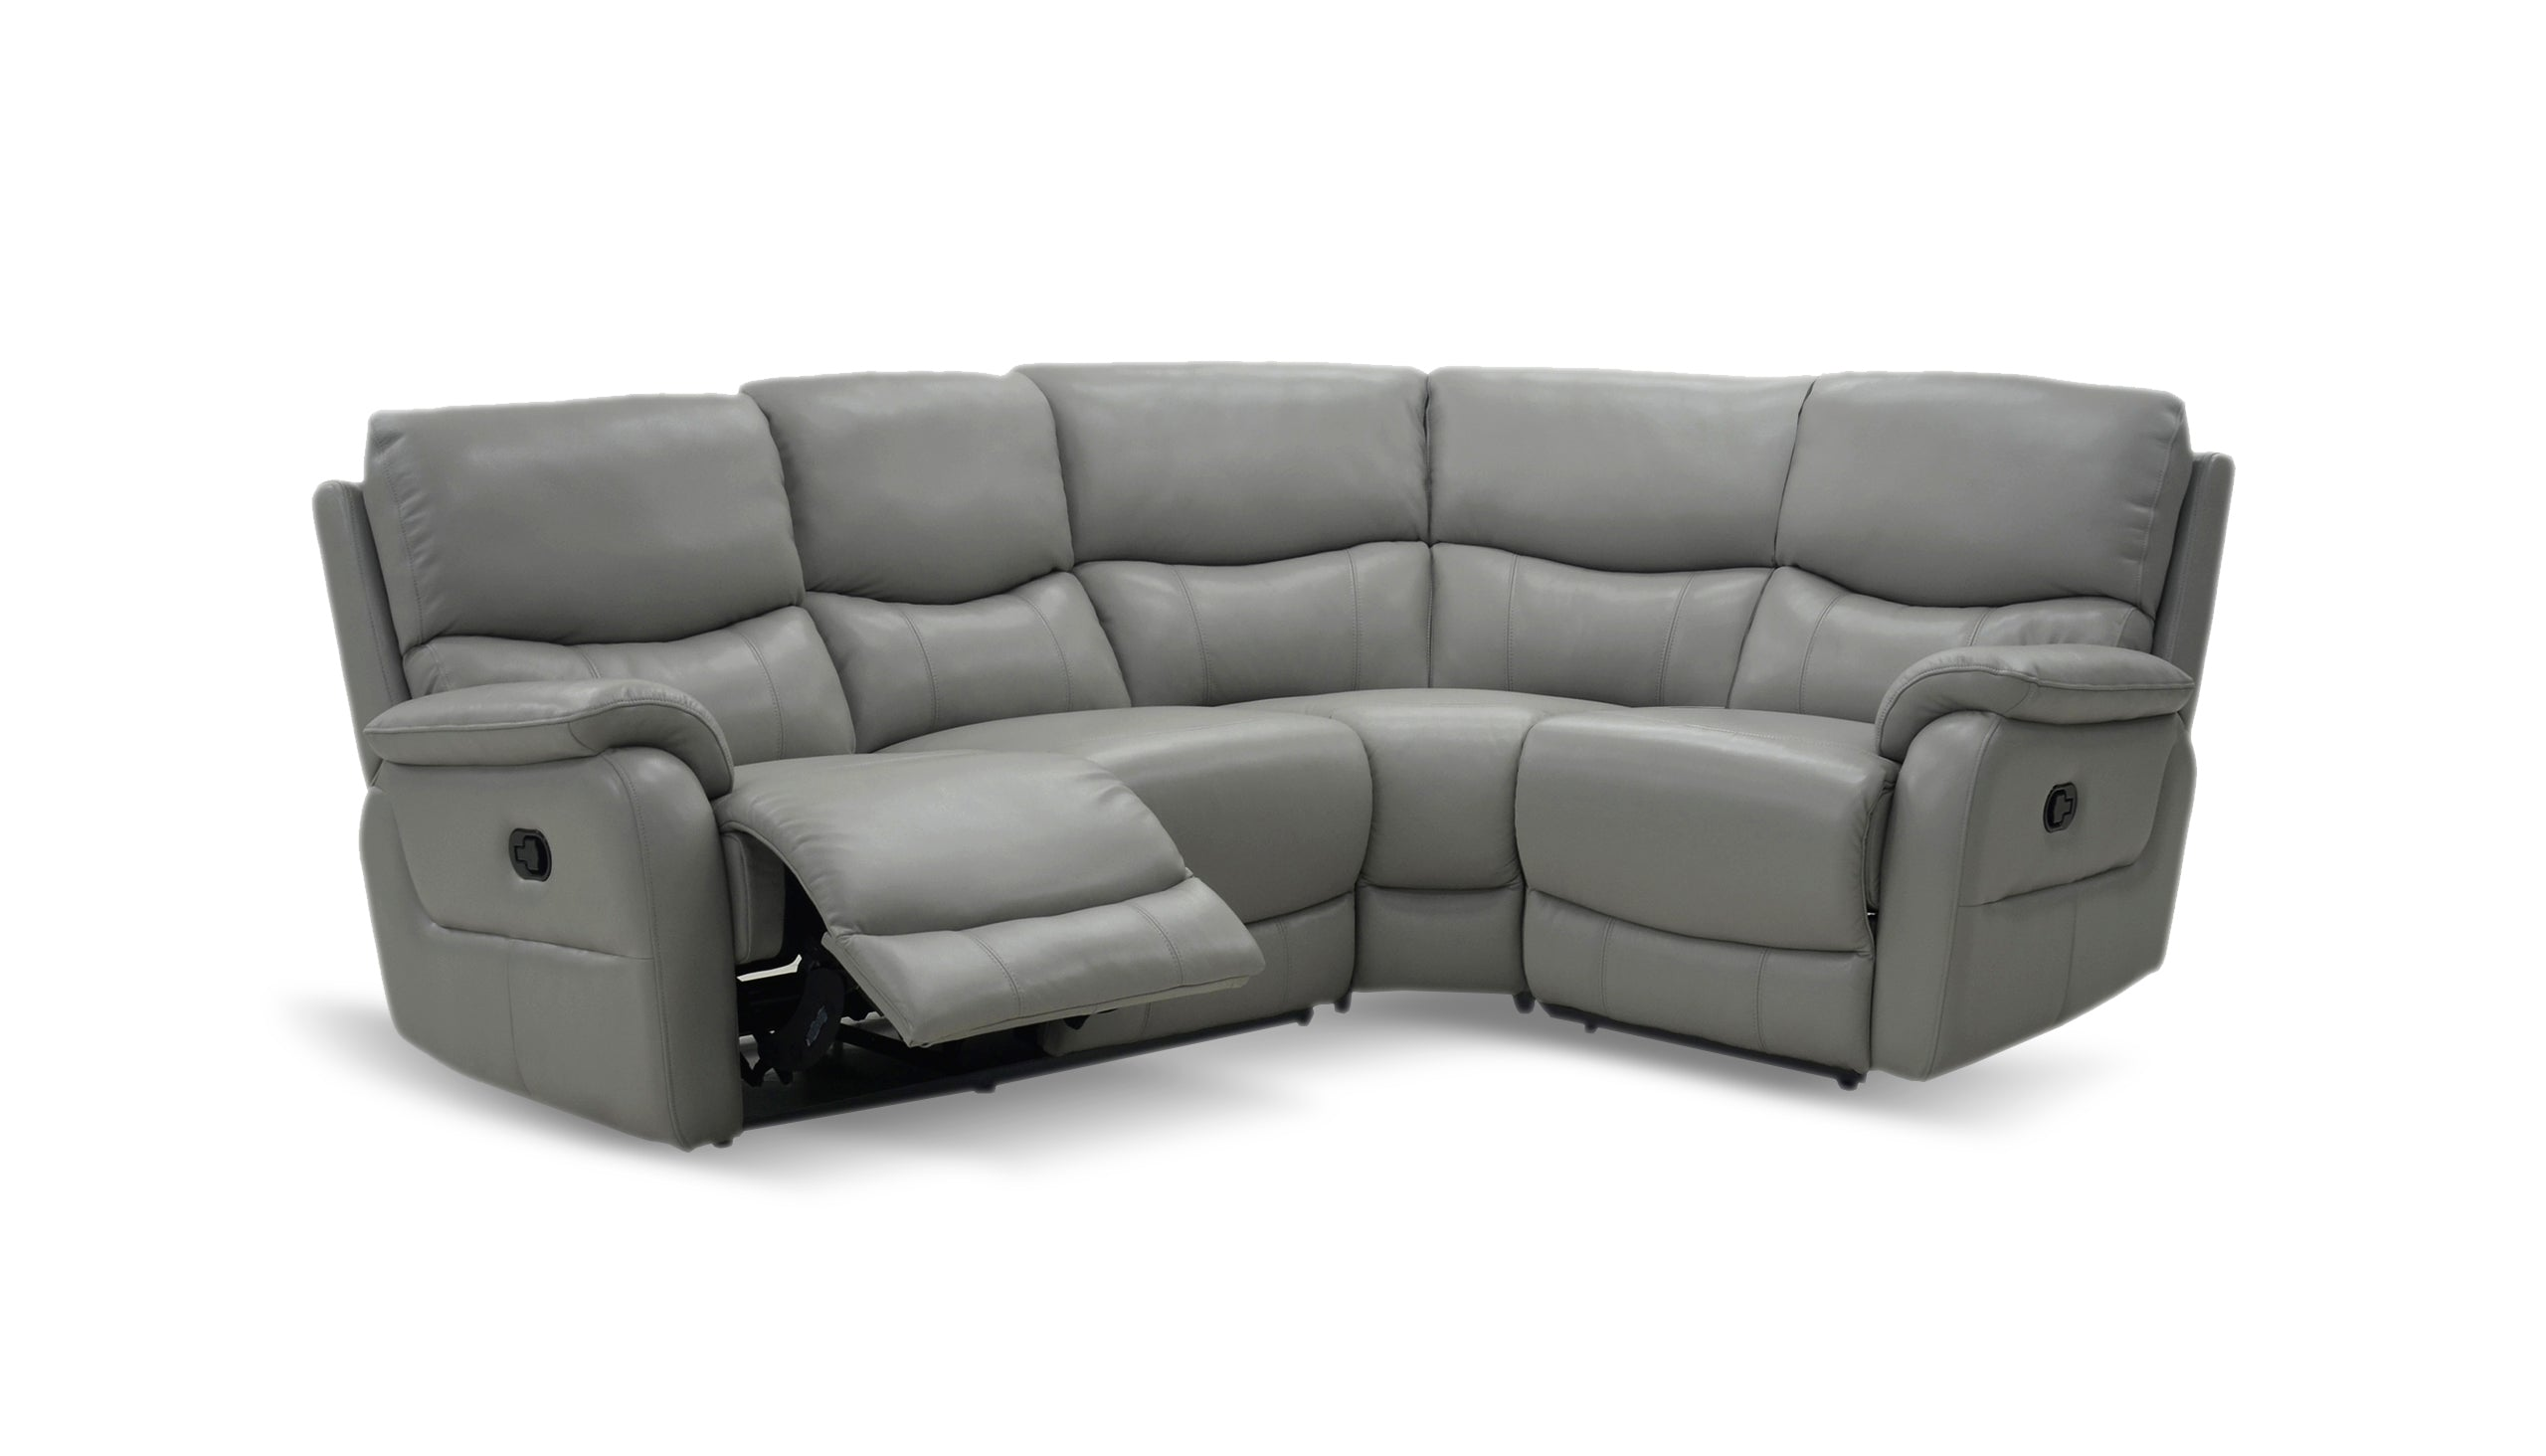 Evelyn Left Hand Facing 2 Corner 1 Manual Recliner Sofa in Leather